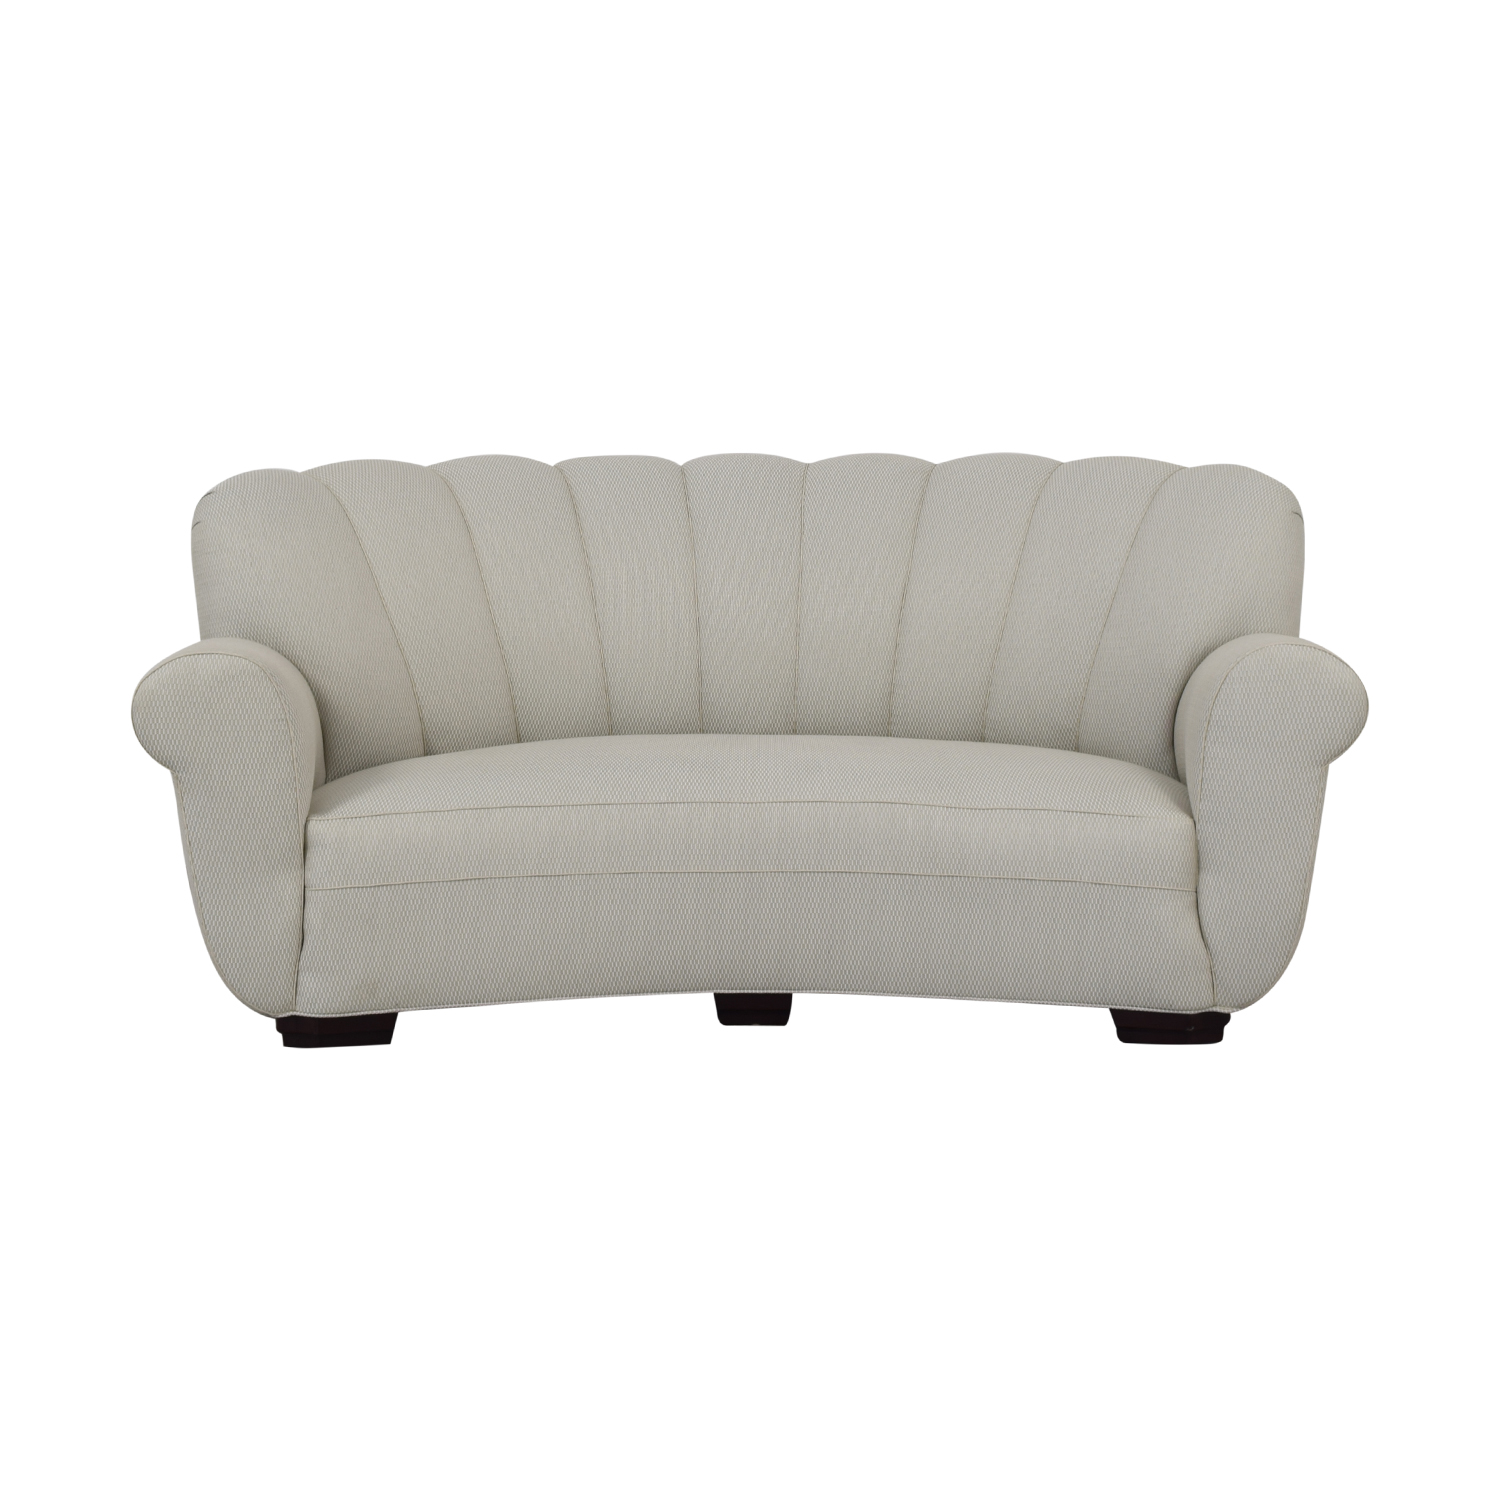 buy Lorin Marsh Channing Sofa Lorin Marsh Classic Sofas